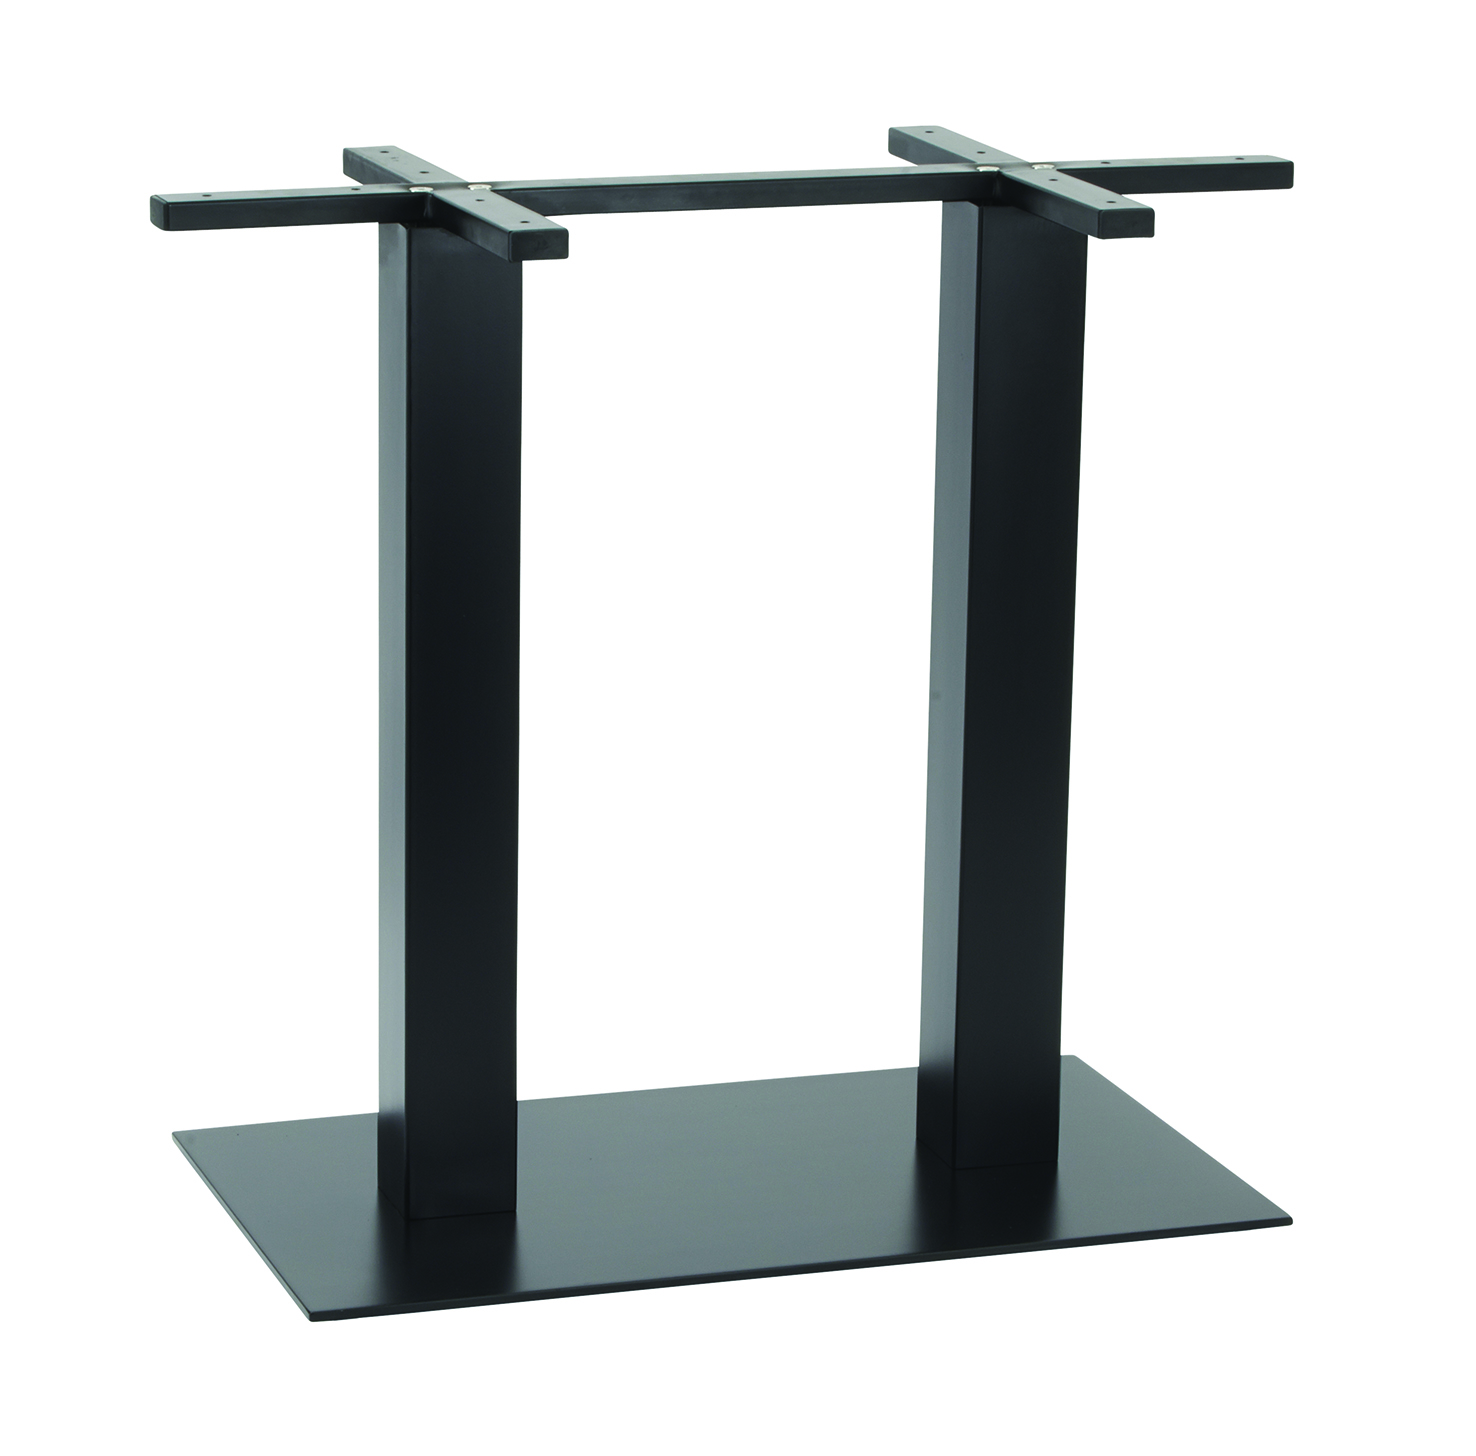 G & A Commercial Seating GBH1628 table base, metal